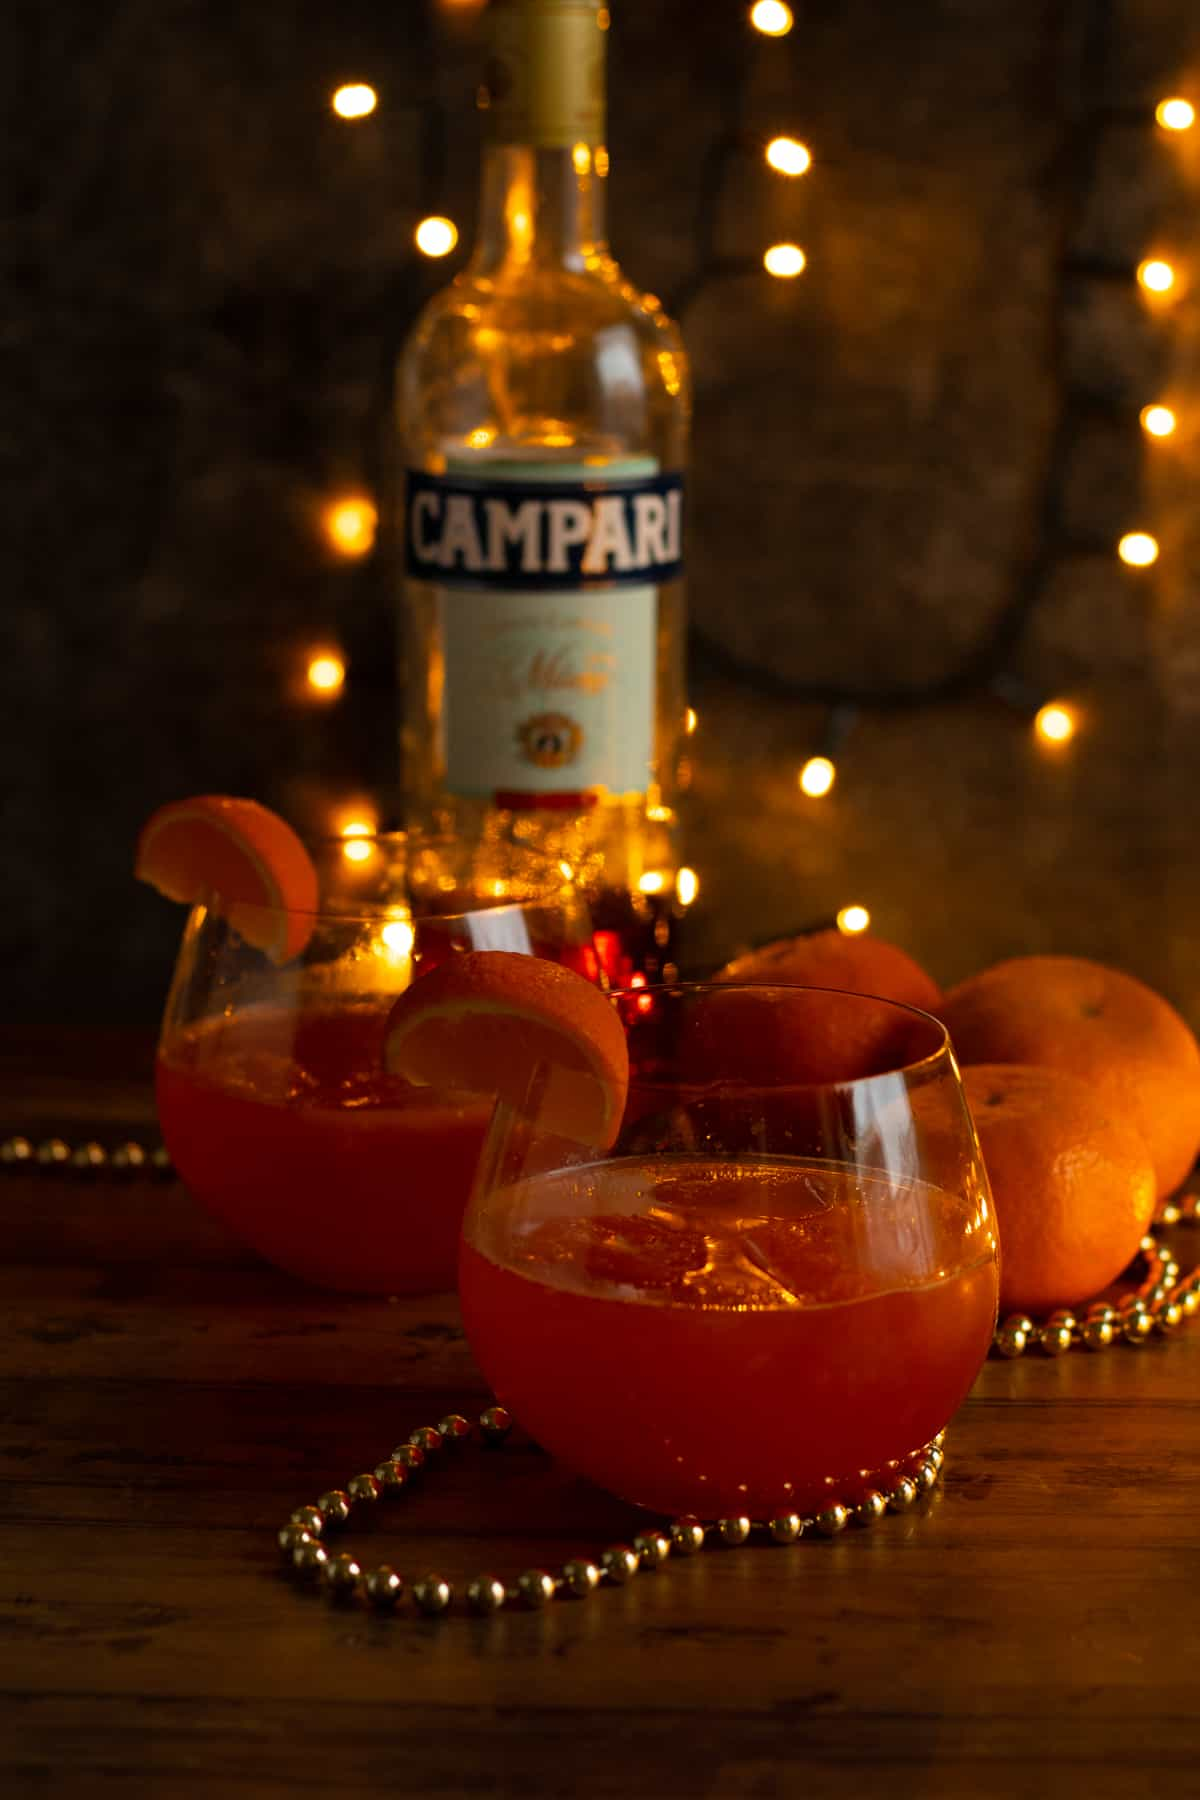 twoclementine campari spritzes with clementines and a bottle of campari in the background